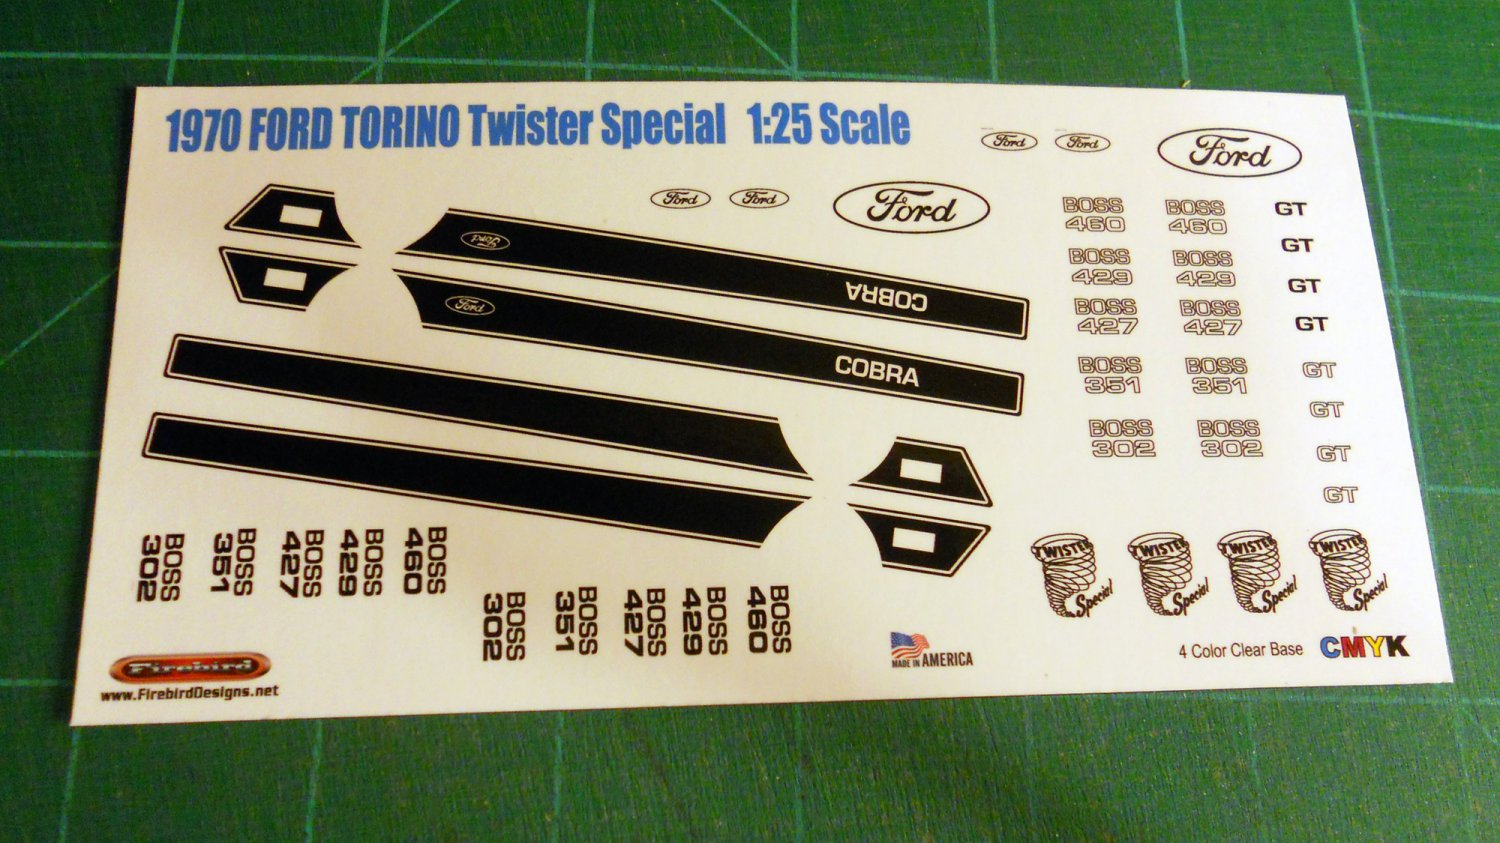 New Ford Torino >> 1970 Ford Torino Twister Special 1:25 Scale